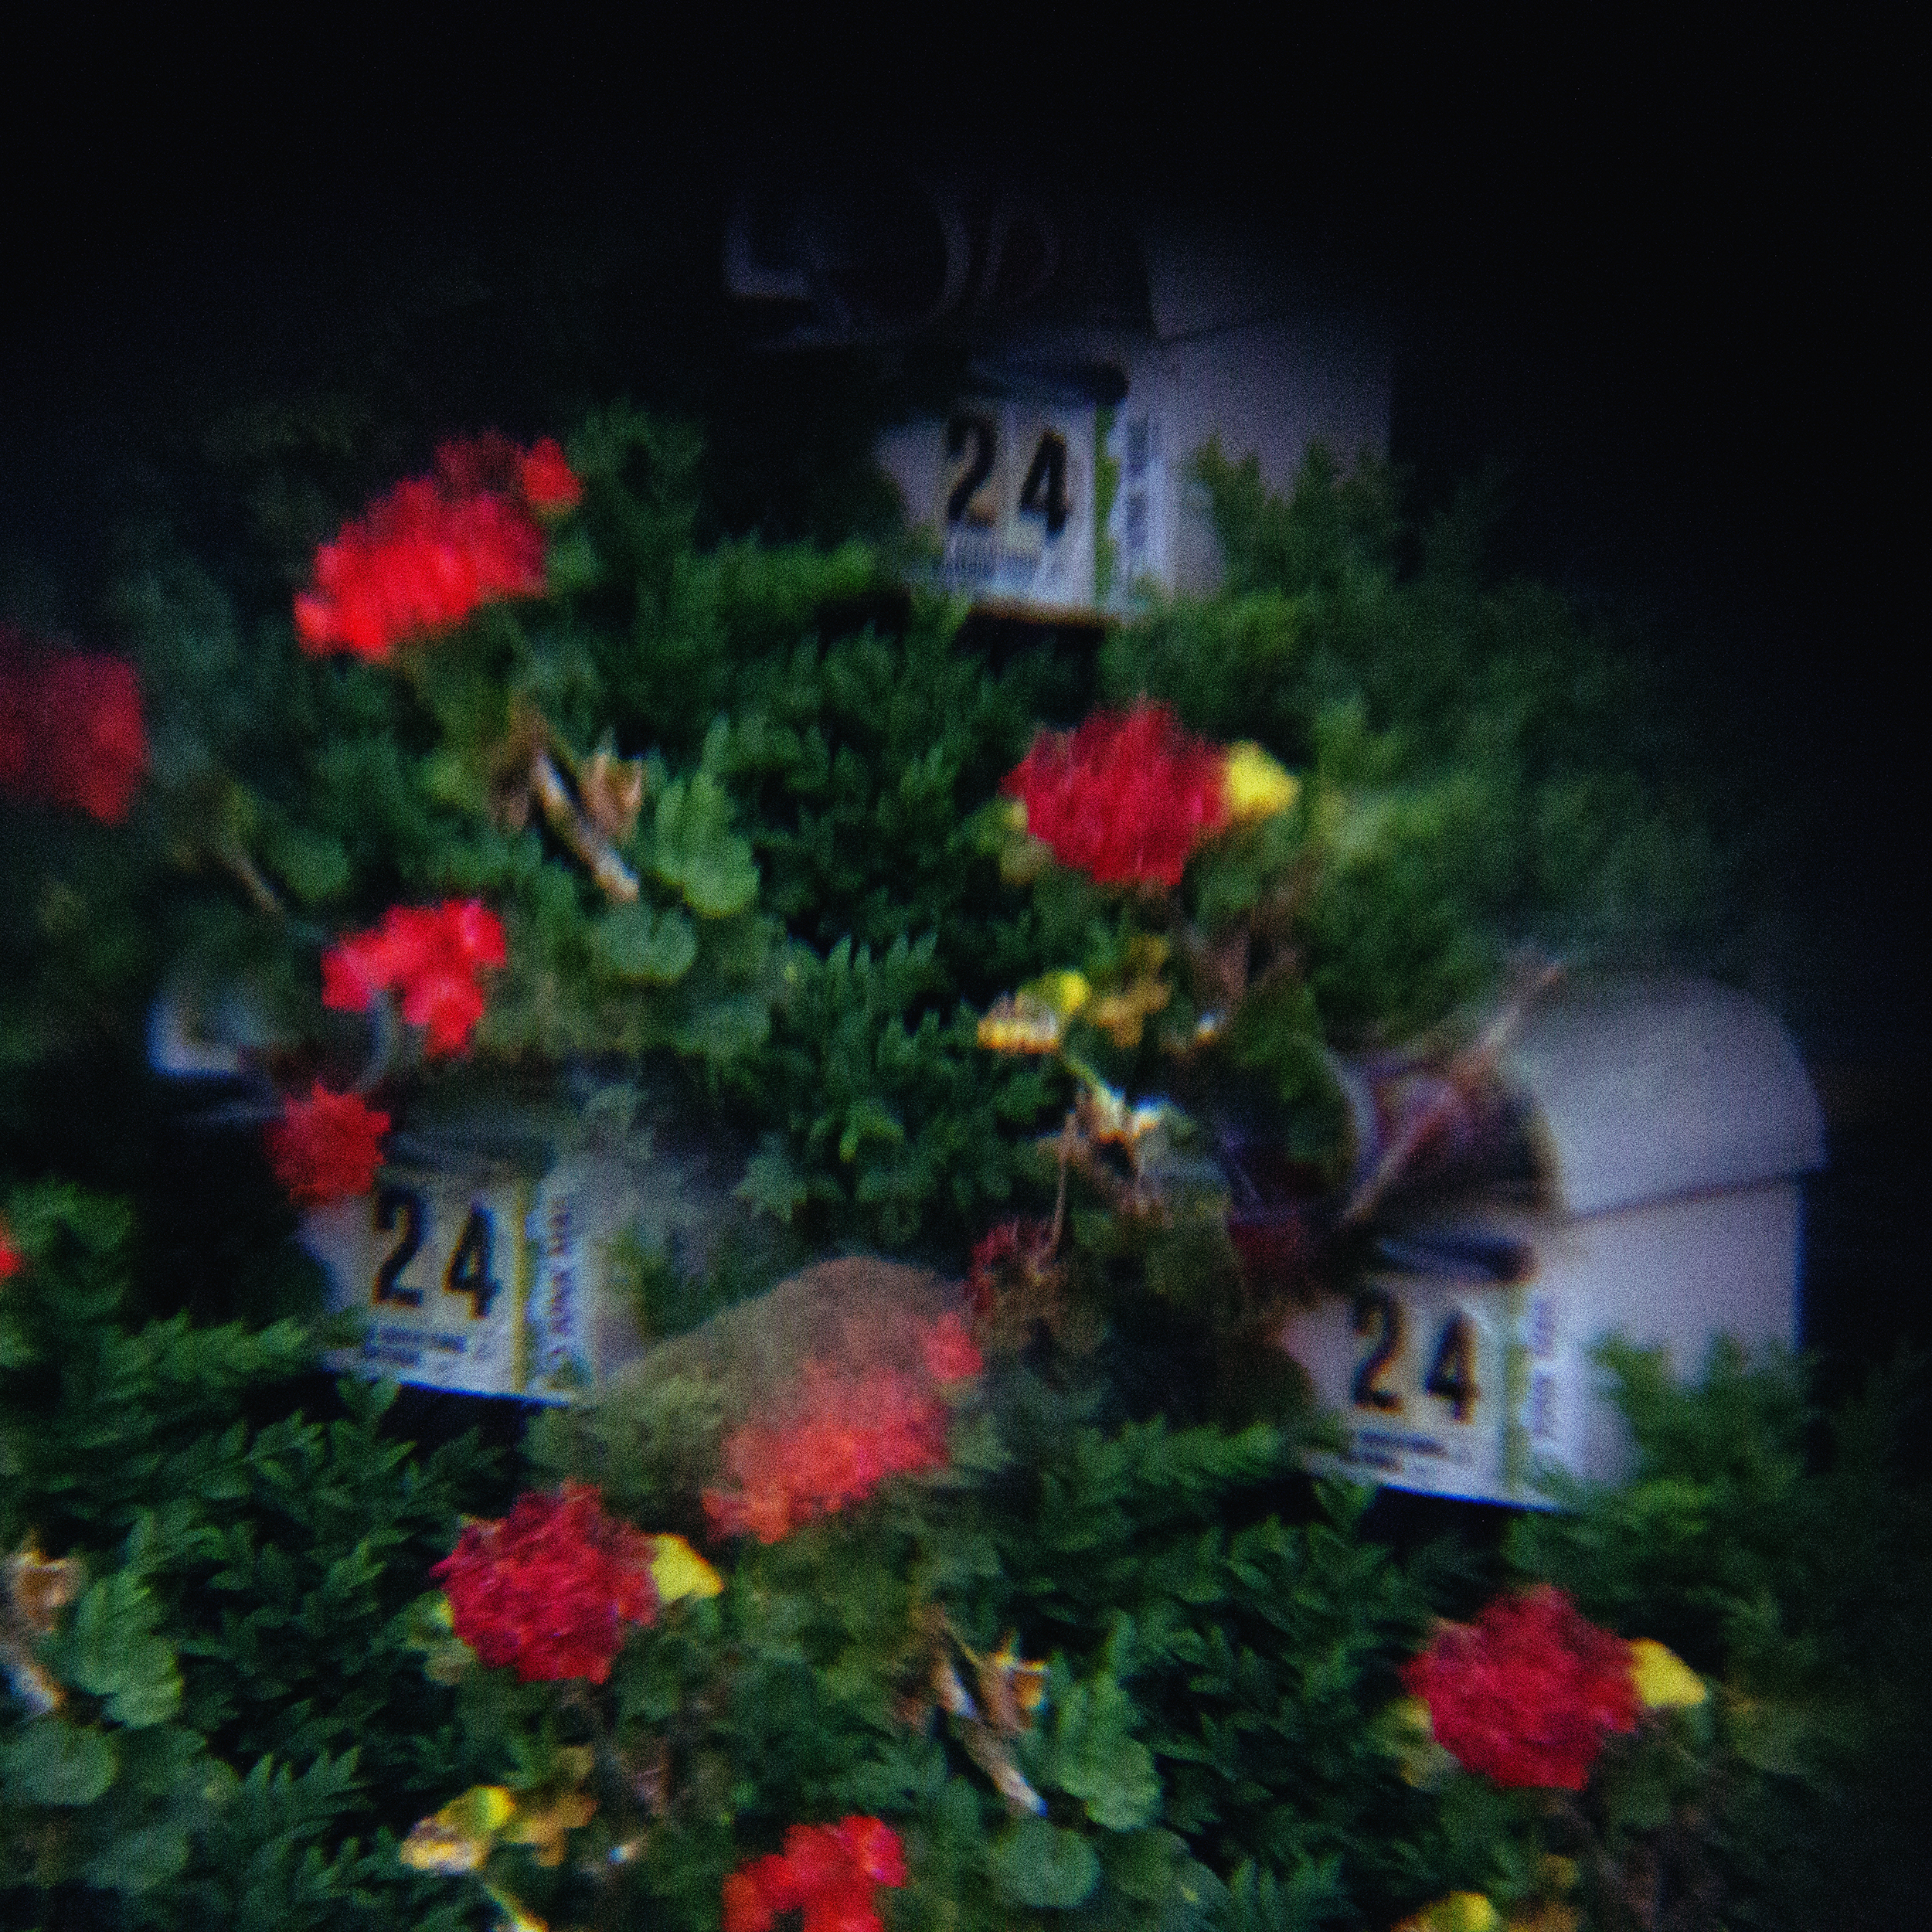 holga lens flowers (6 of 30).jpg